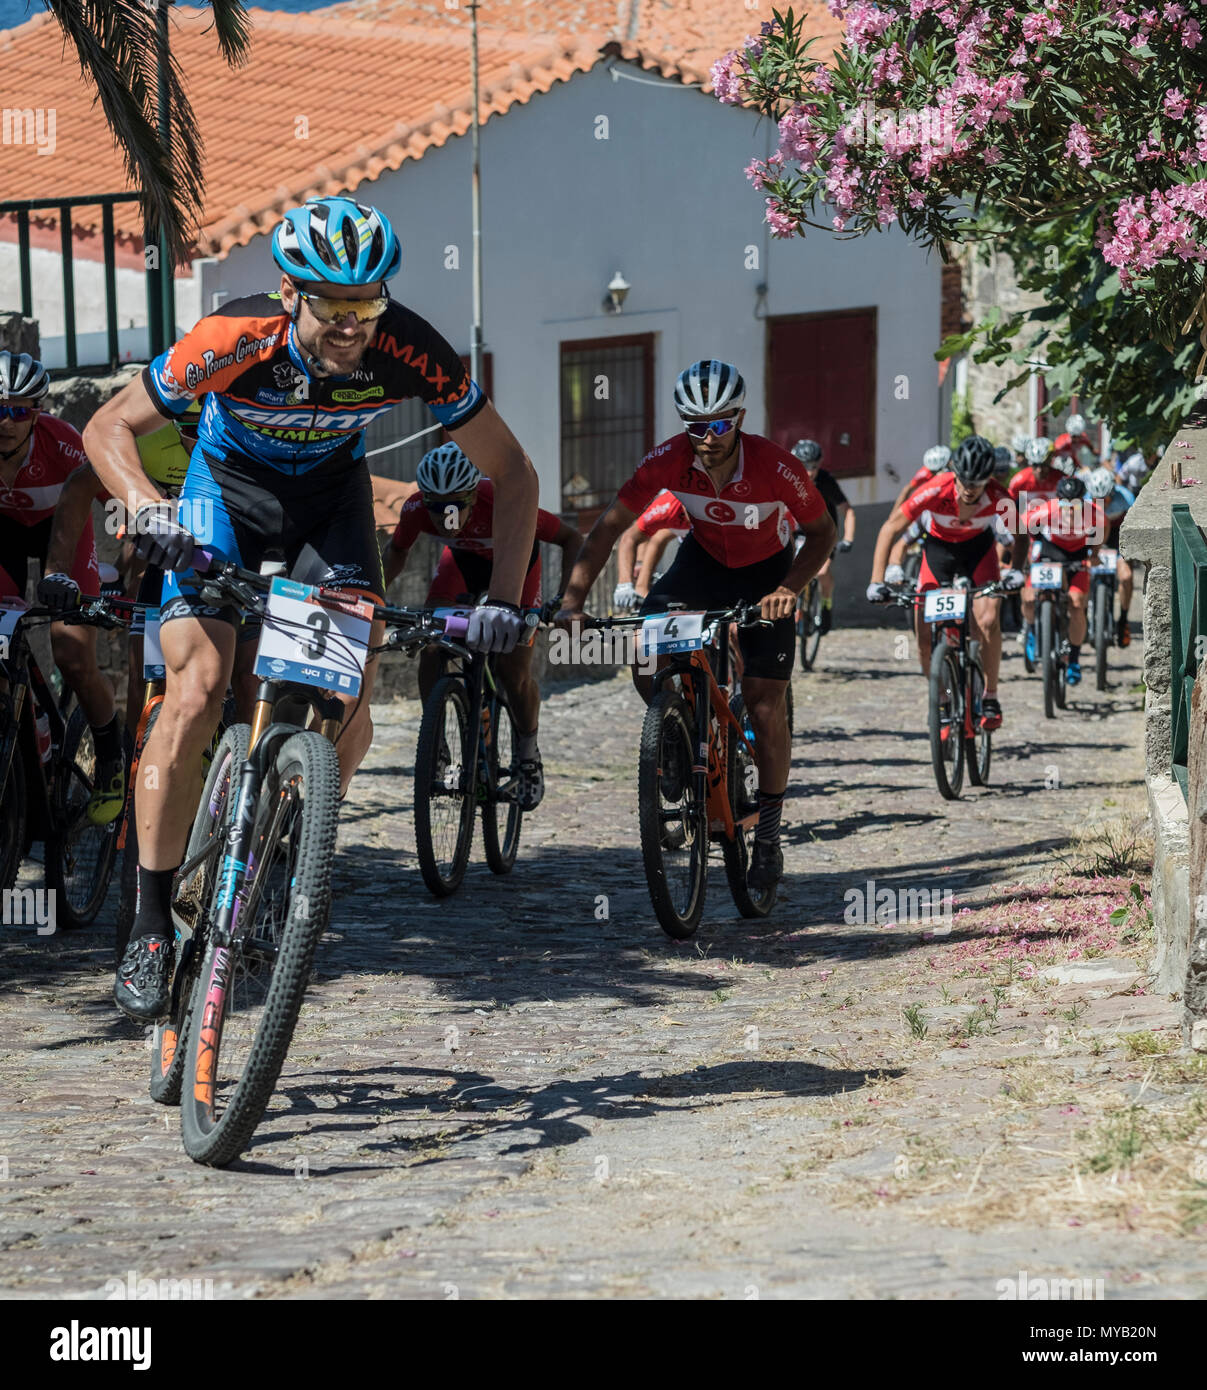 The initial pack of cyclists on the first lap of an international mountain bike race in the Greek village of Molyvos on the island of Lesvos Stock Photo